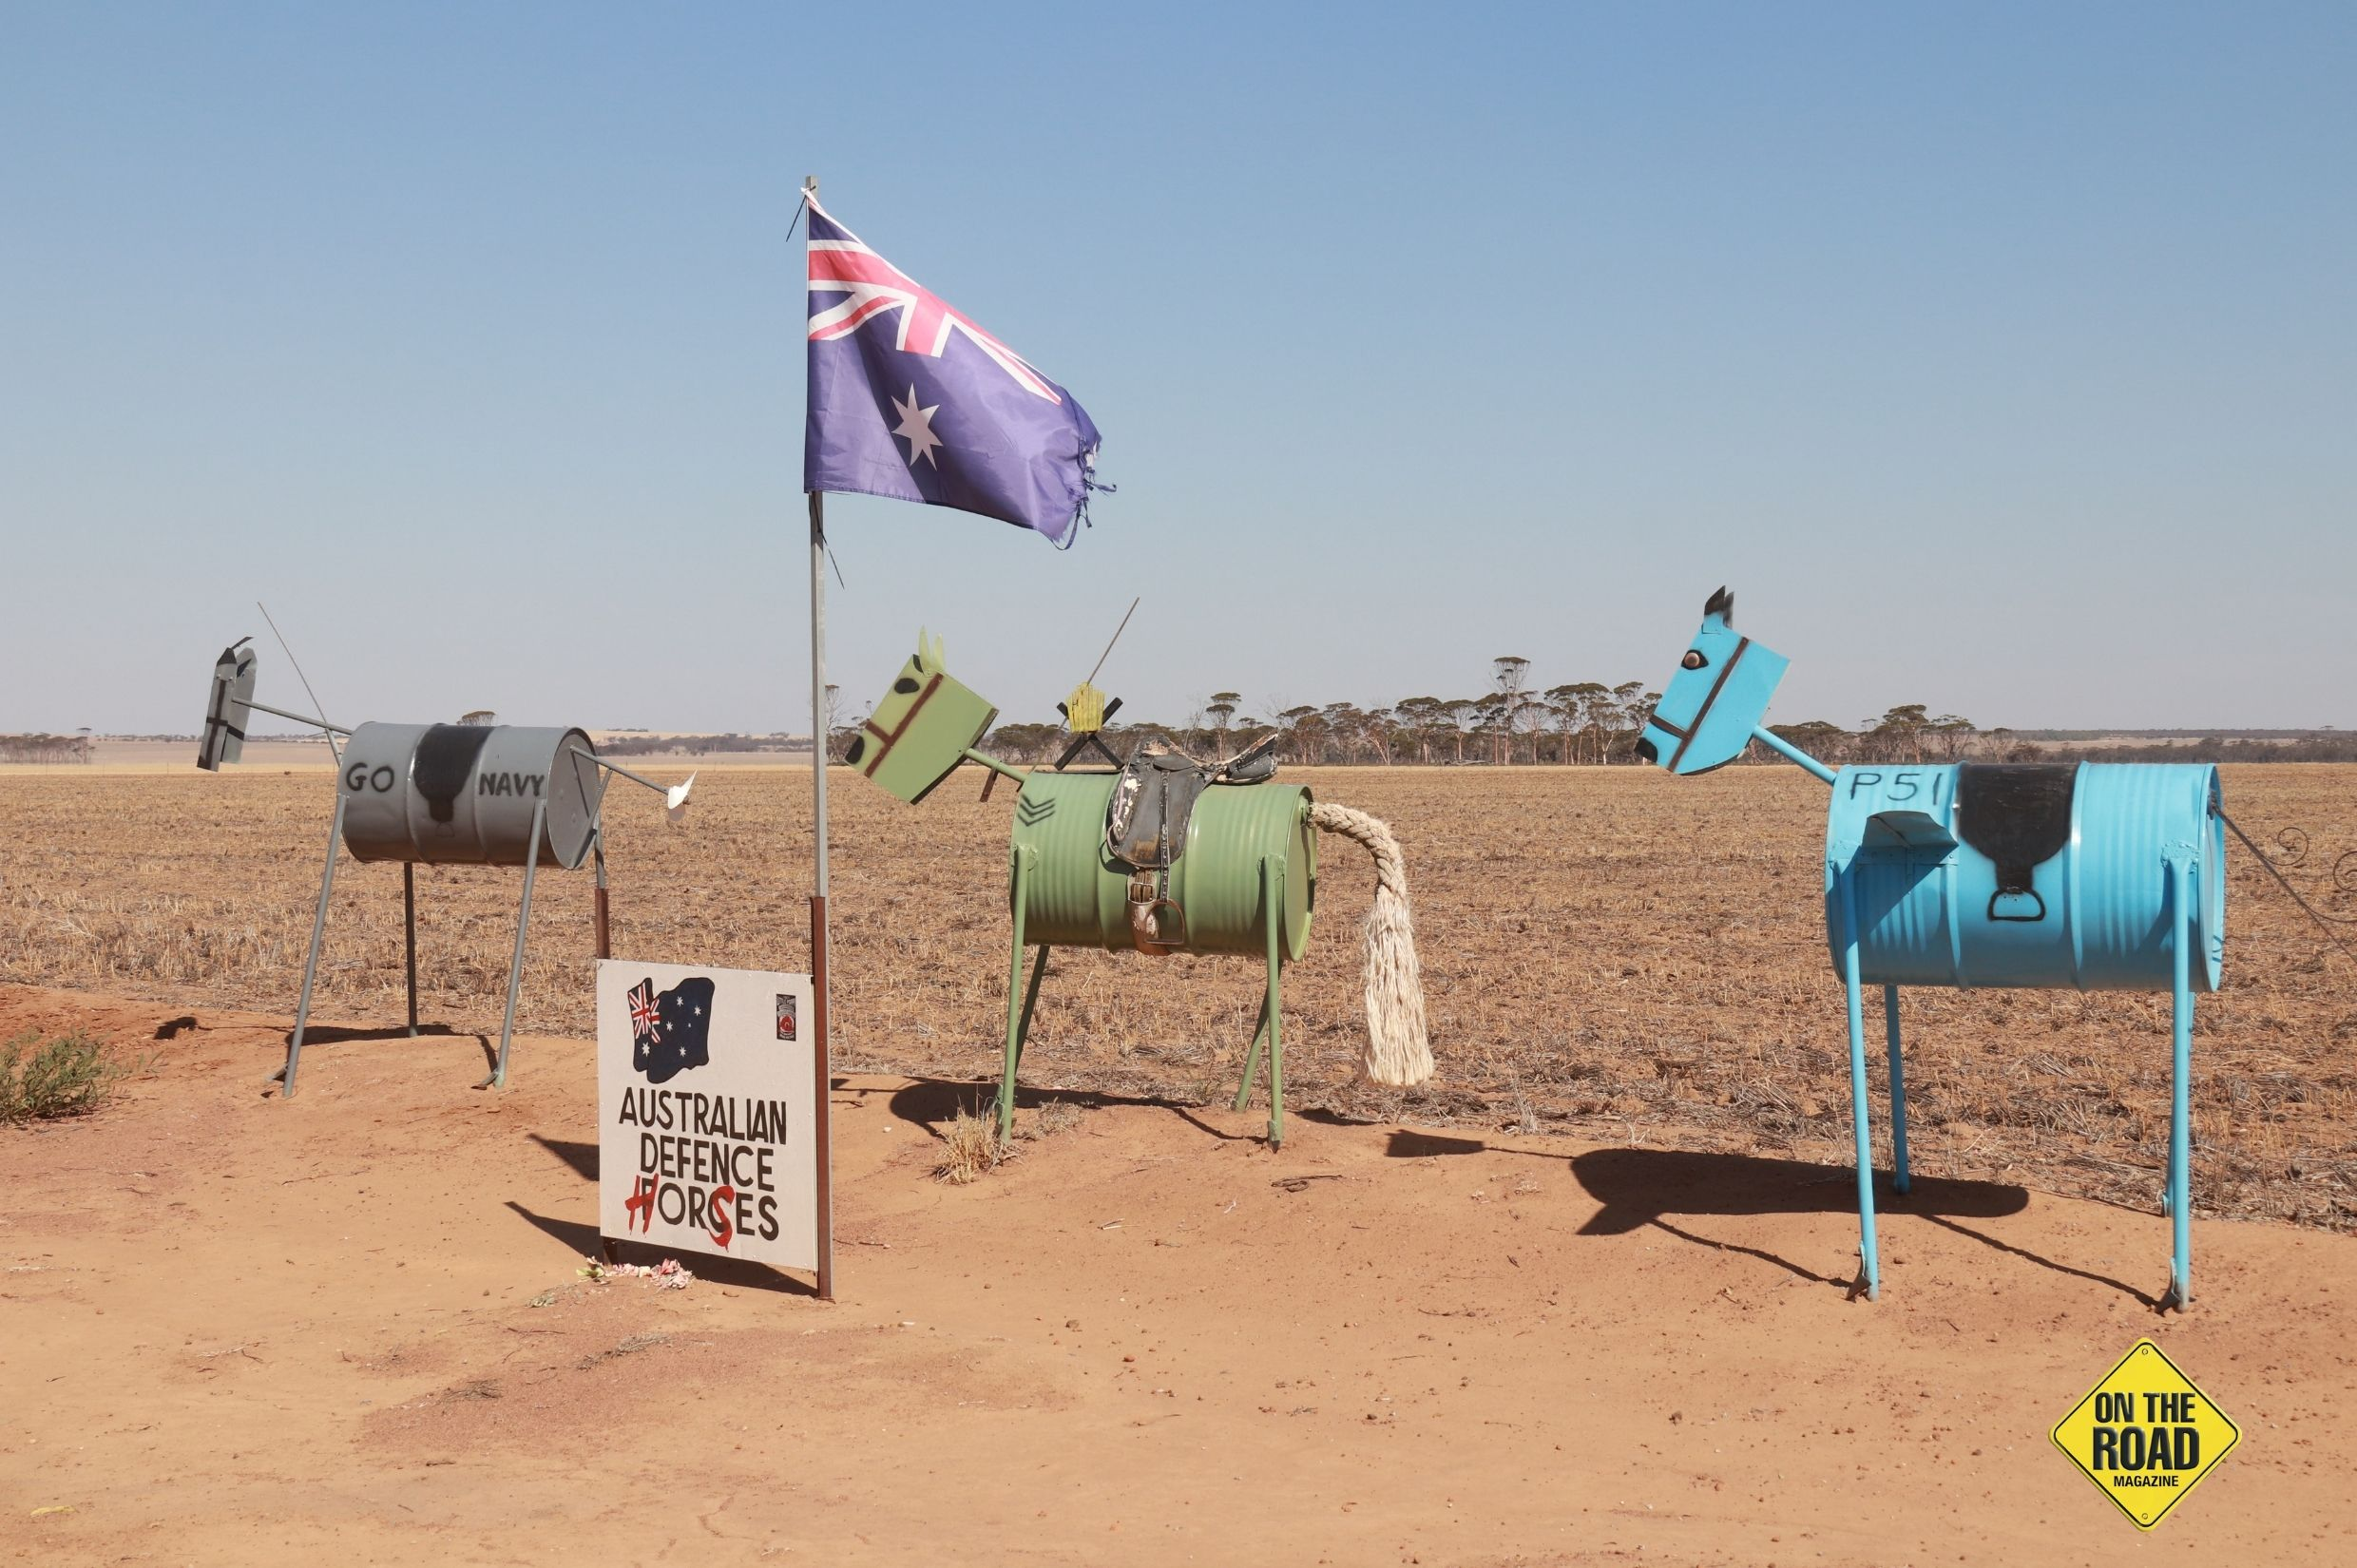 THE TIN HORSE HIGHWAY